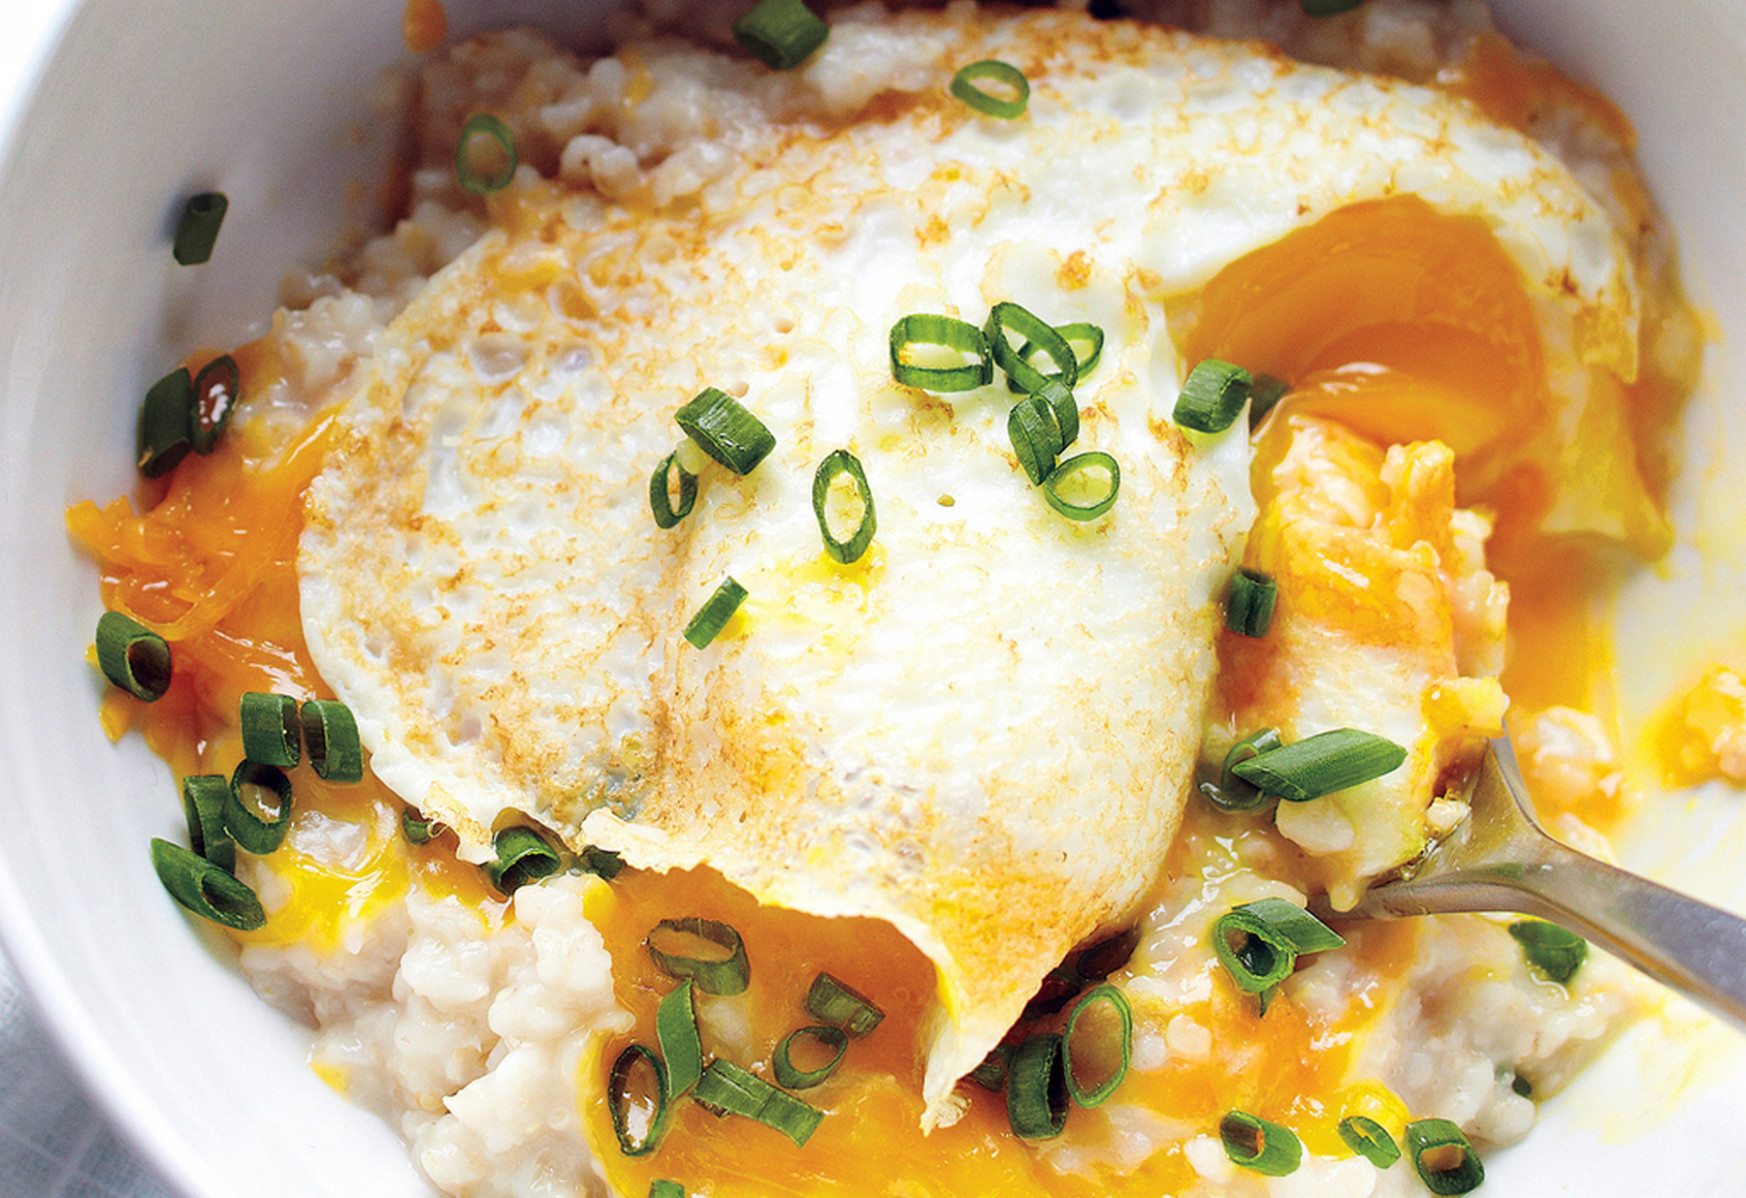 Healthy Breakfasts: 10 Fast Recipes for Busy Mornings - recipes of healthy breakfast